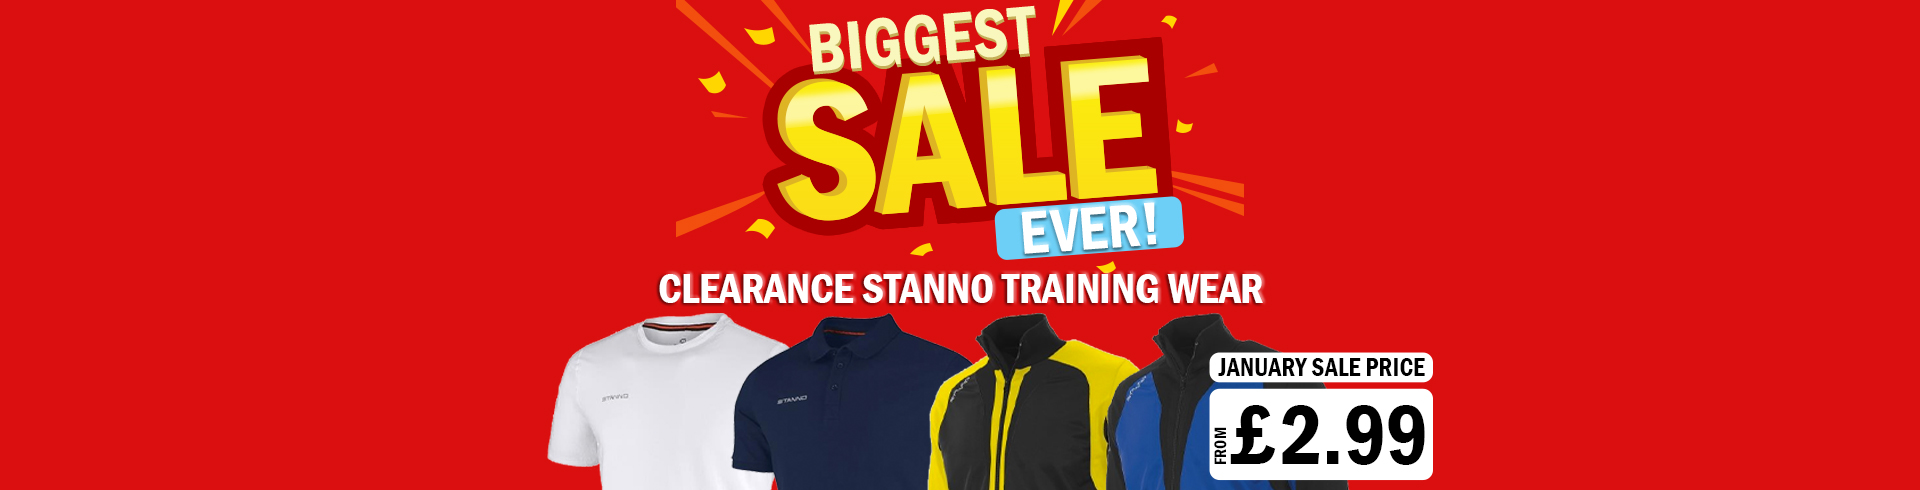 STANNO TRAINING WEAR